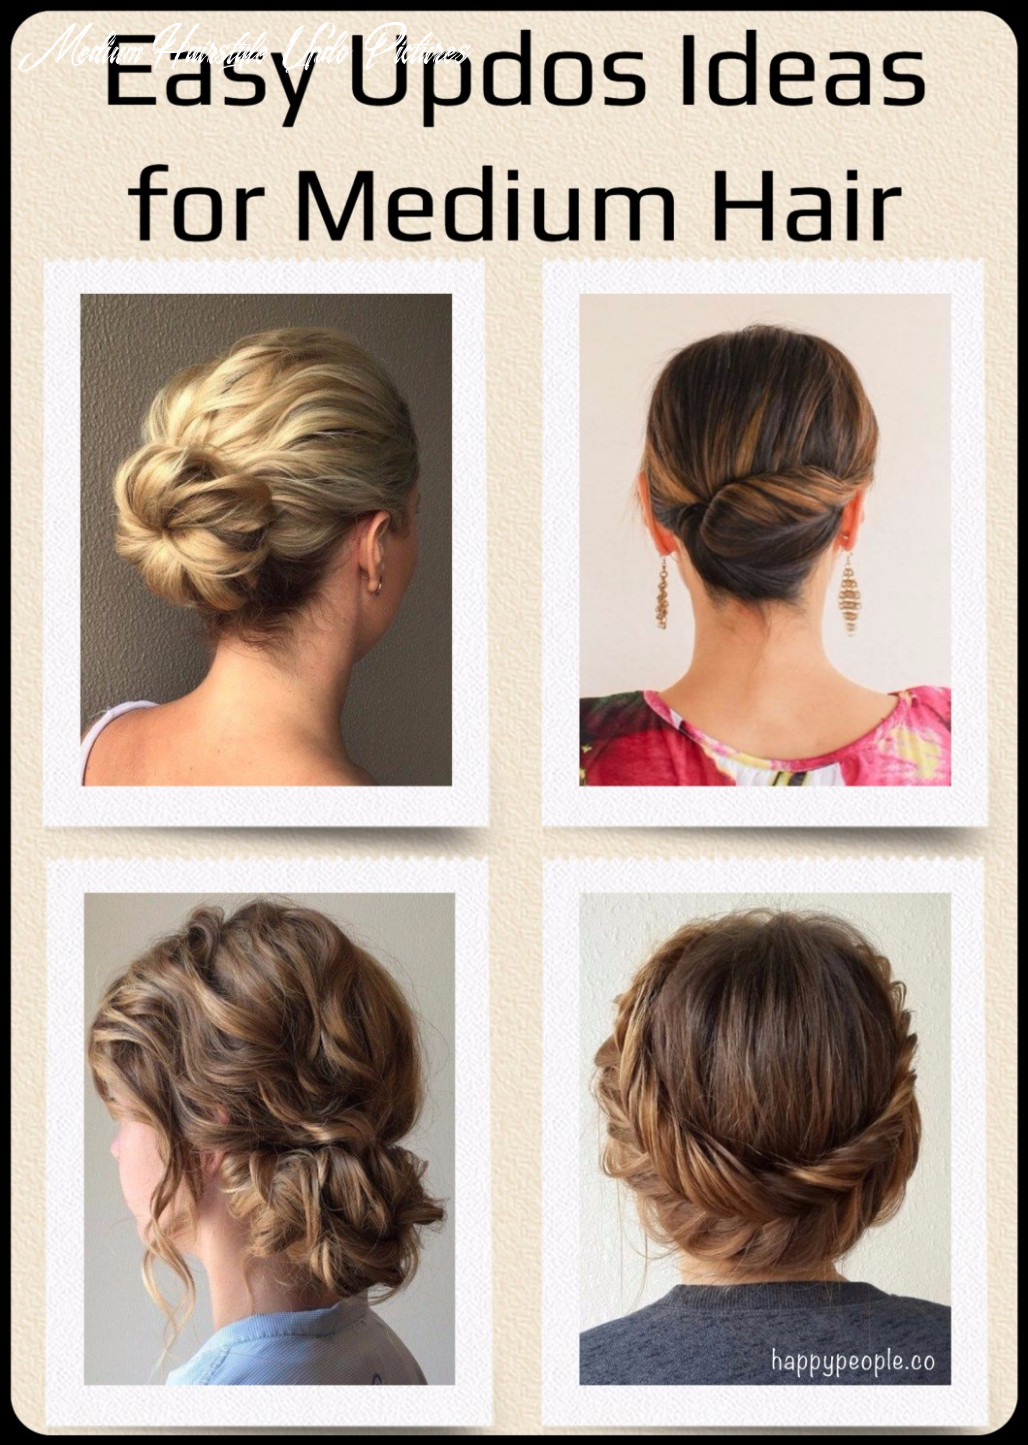 Easy hair updo ideas for medium hair that are cute medium hairstyle updo pictures